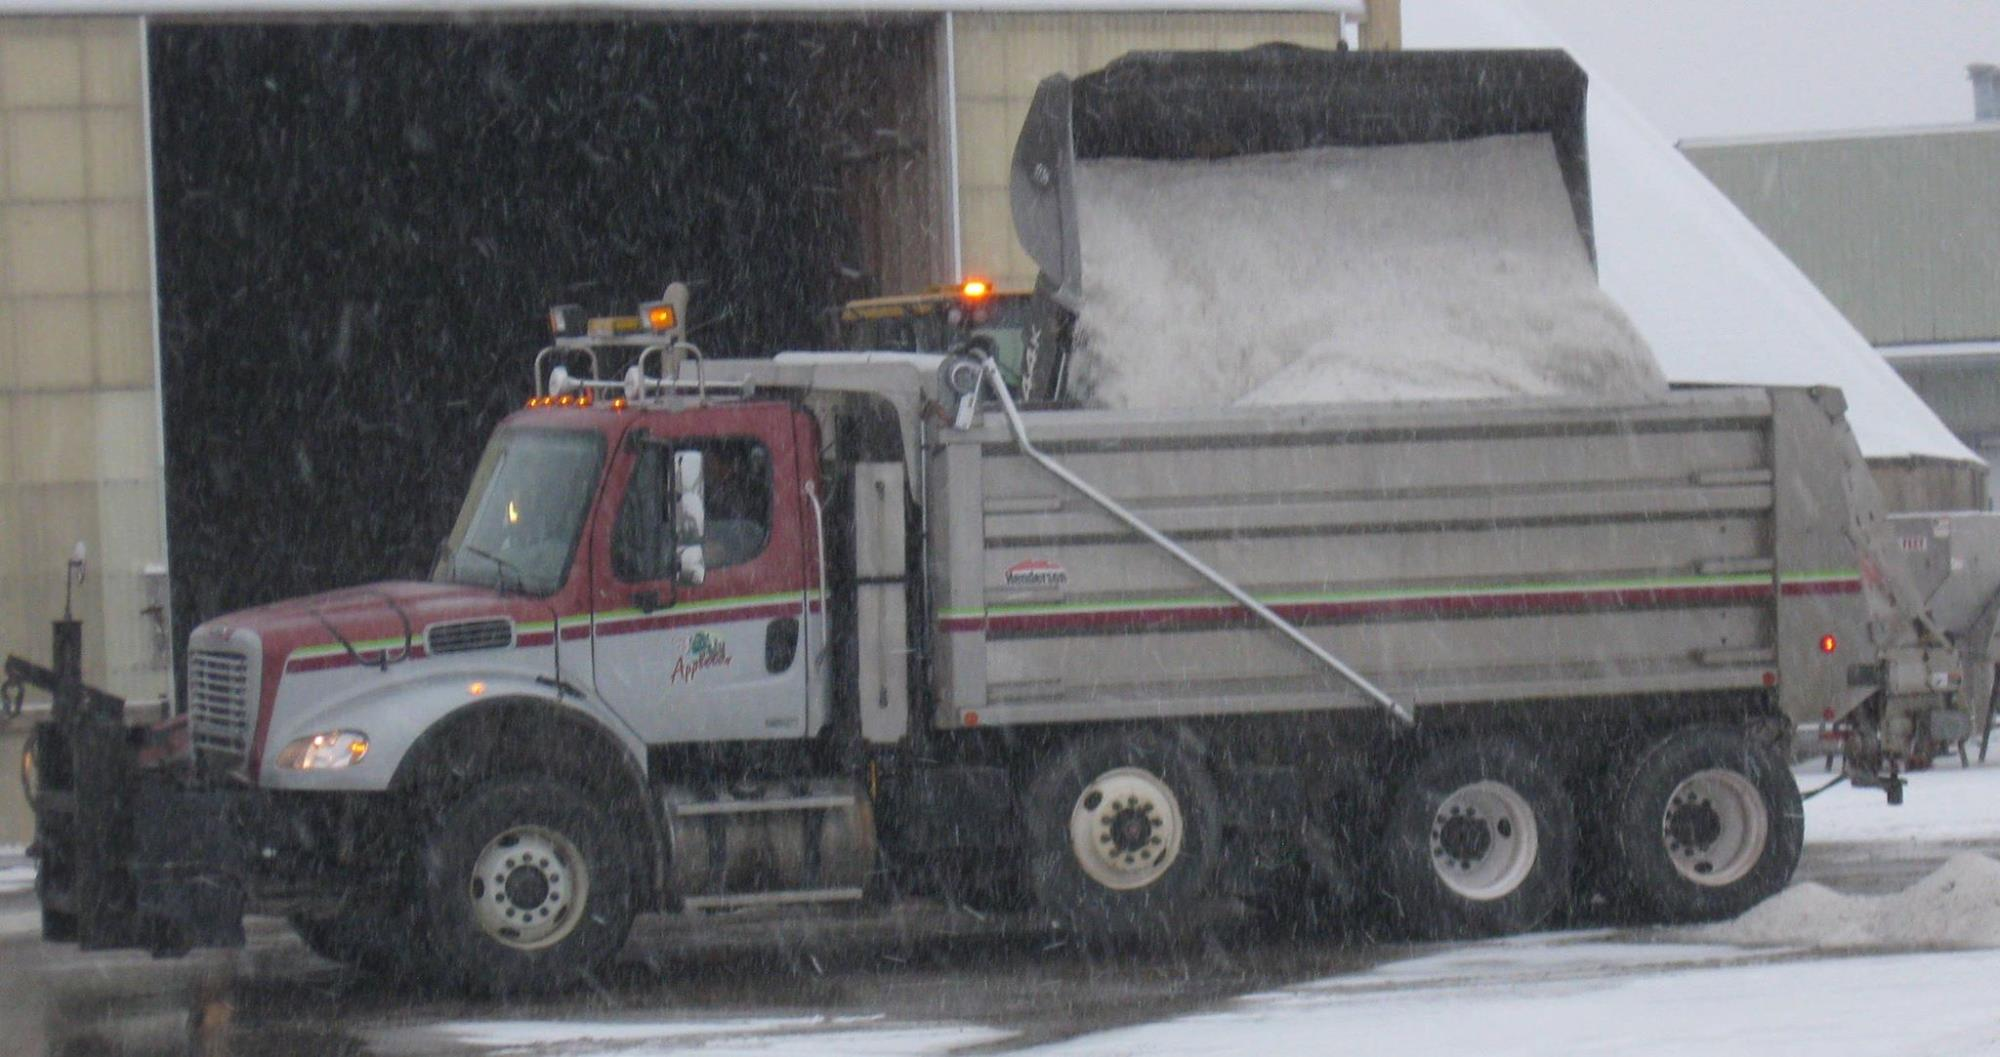 Salt shortage forcing DPW to limit use for the remainder of winter